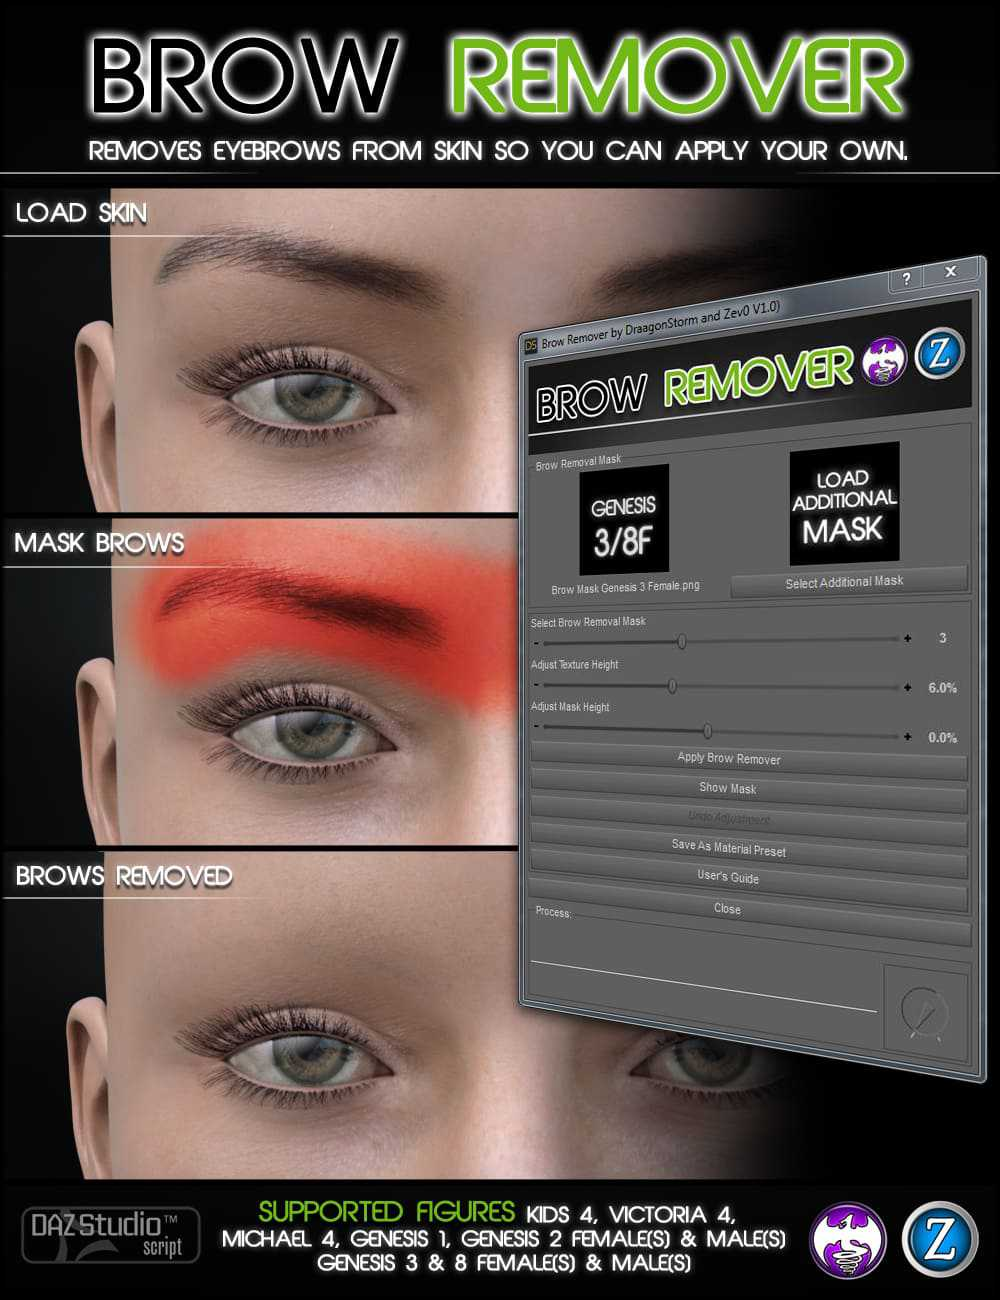 Brow Remover for Daz Studio (G8 update)